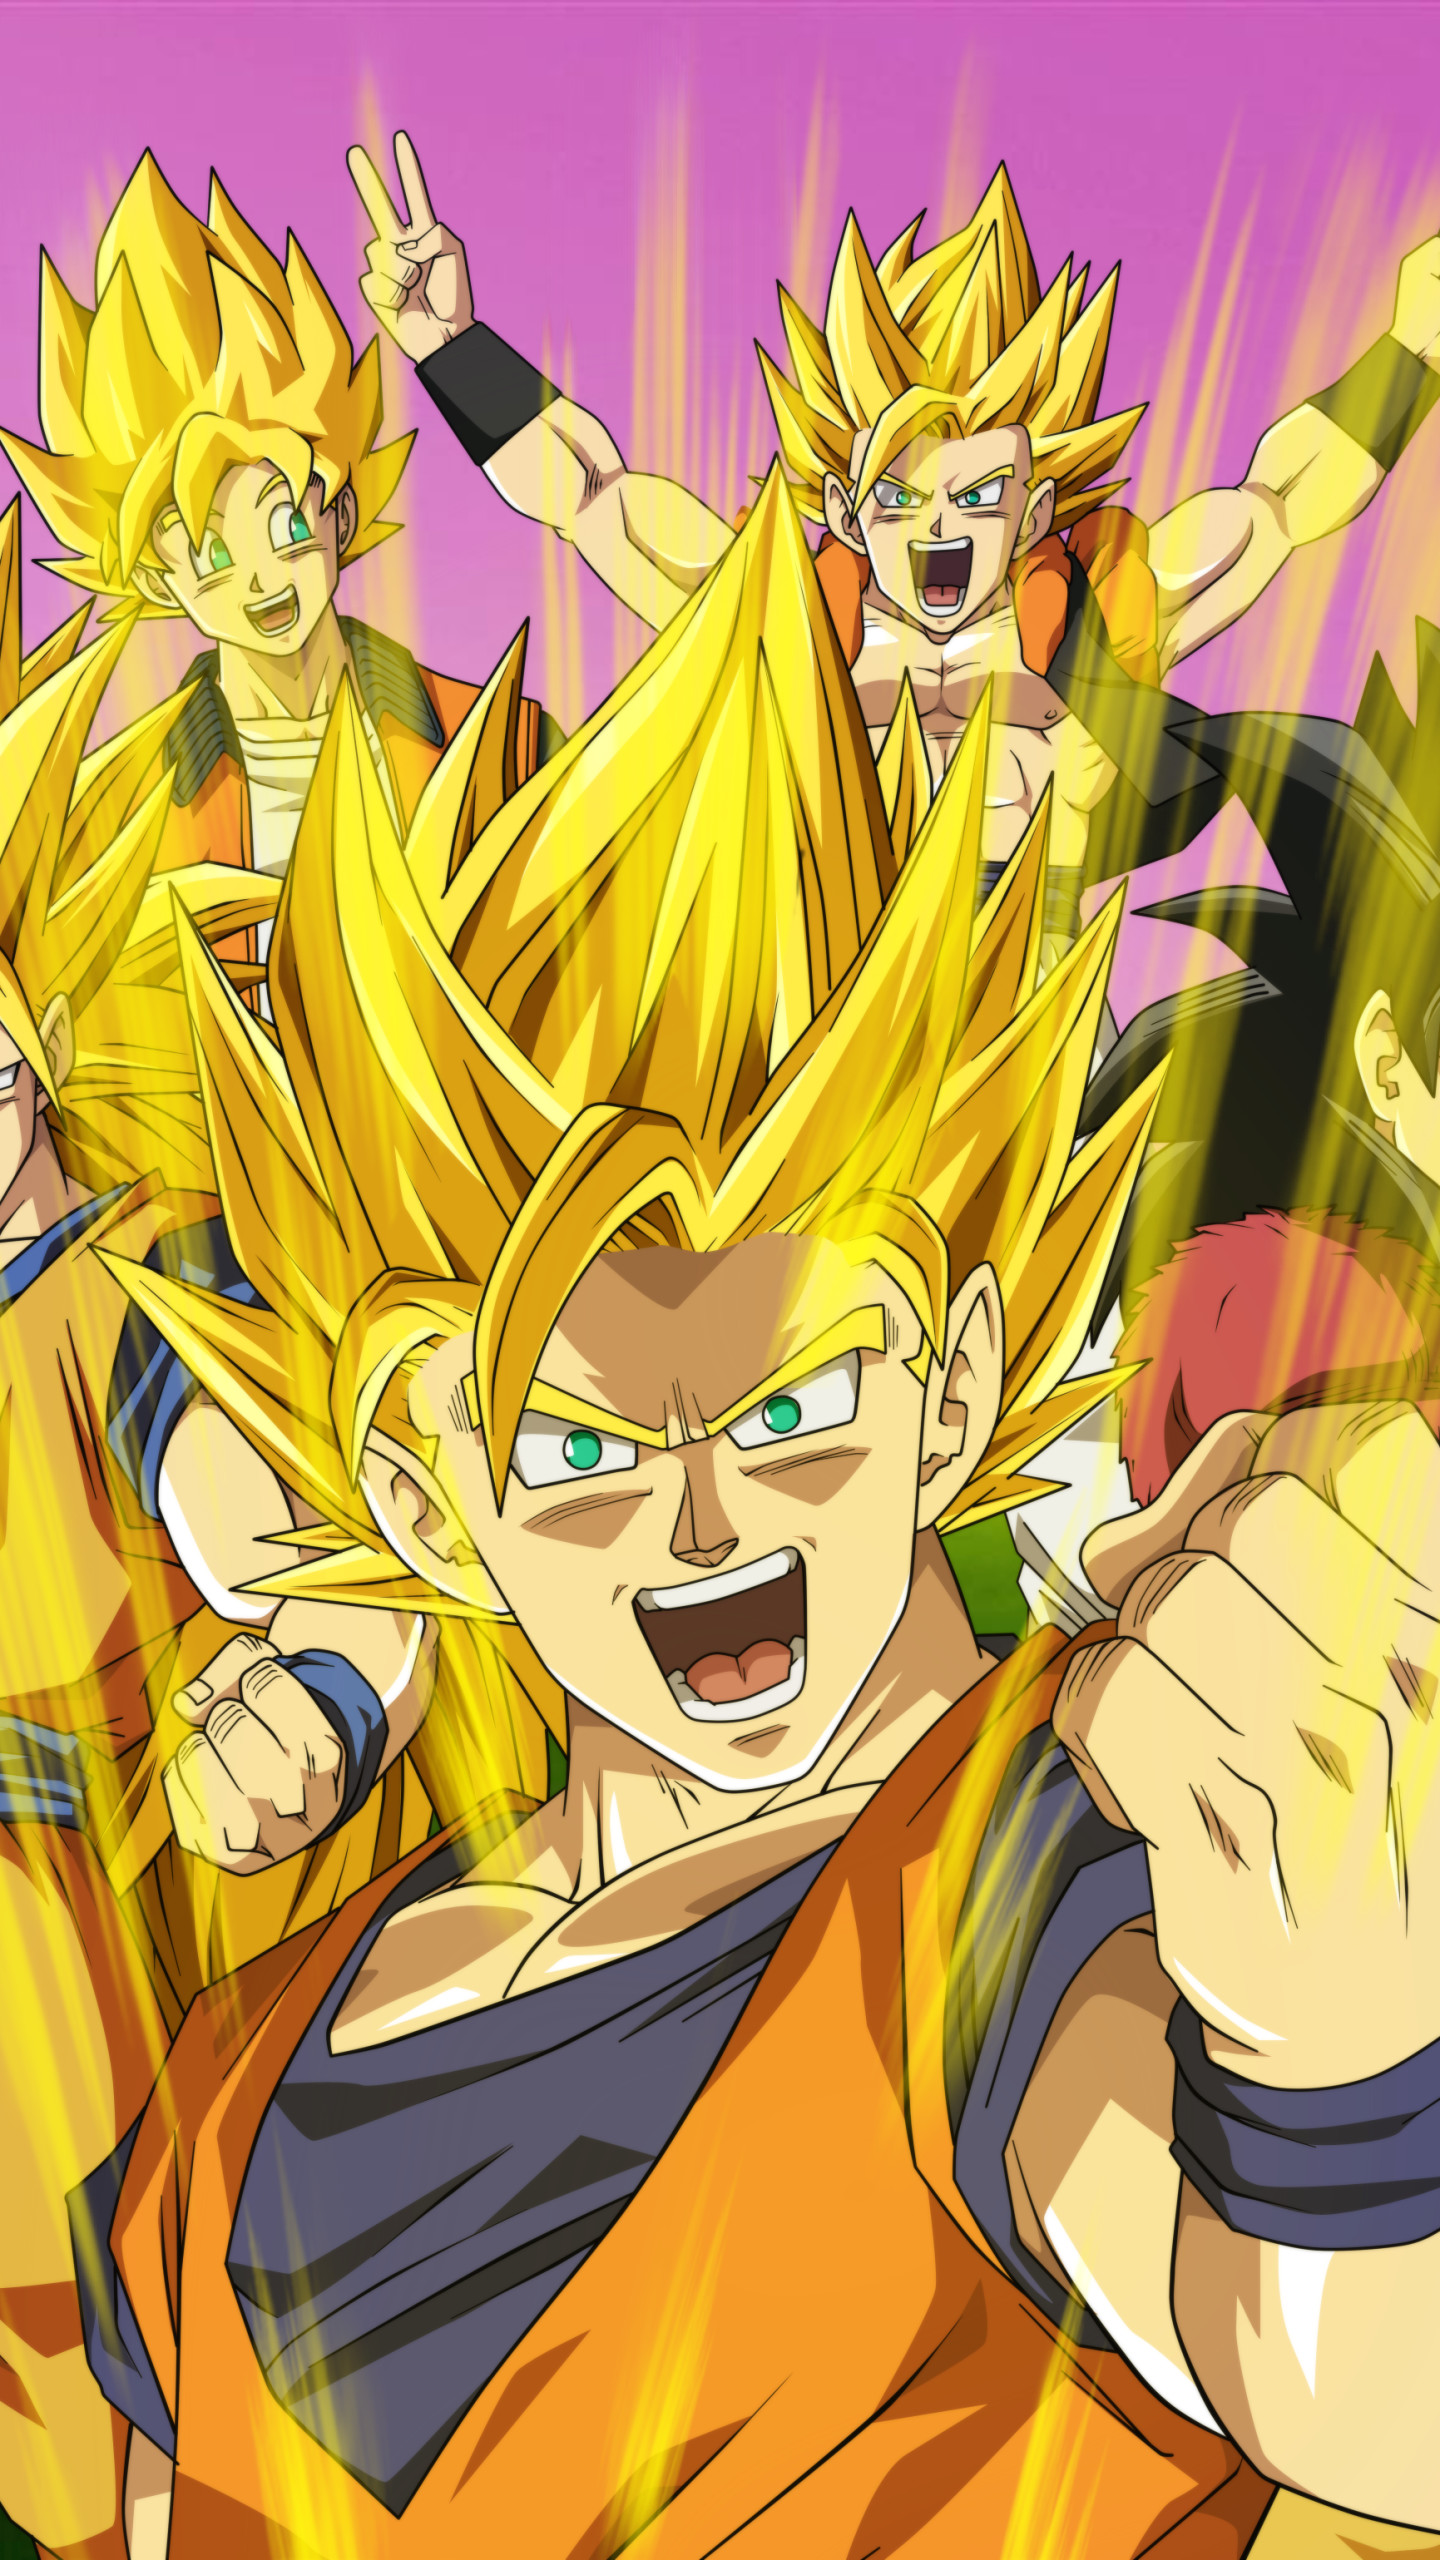 Dragon Ball Super Live Wallpaper Iphone X Dragon Ball Z Live Wallpapers 67 Images